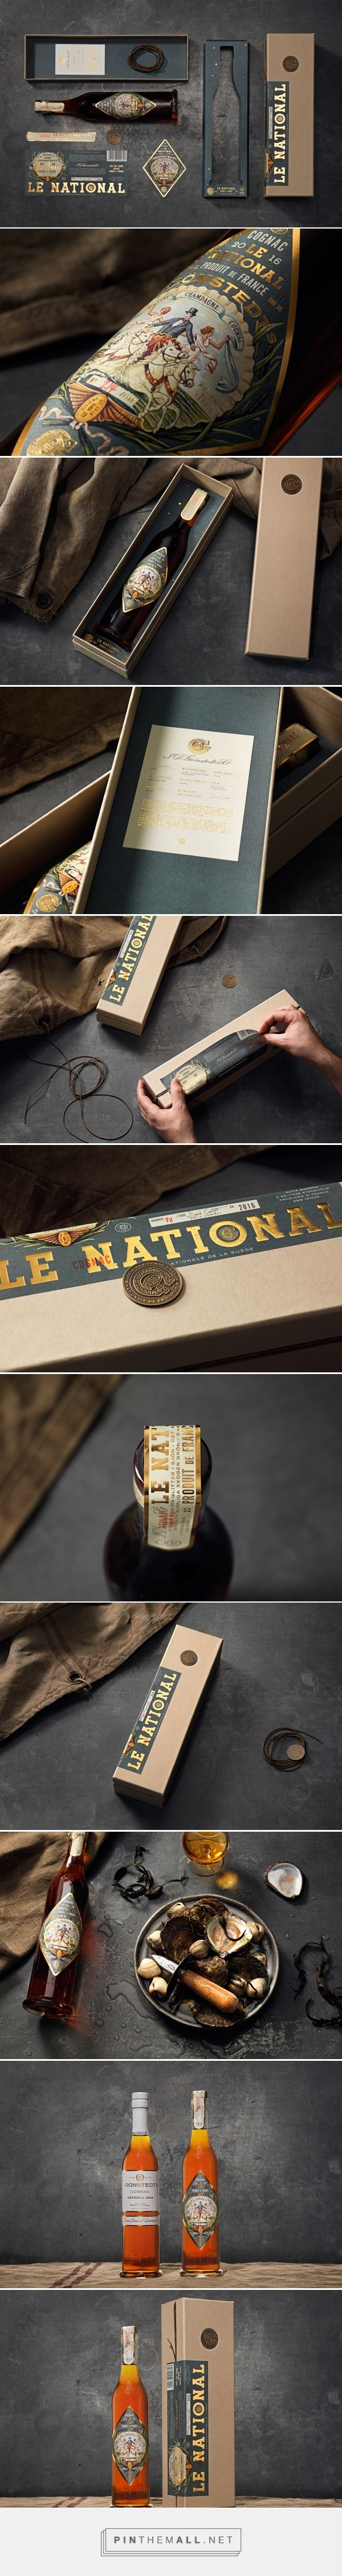 Branding, illustration and packaging for Grönstedts Le National on Behance by…